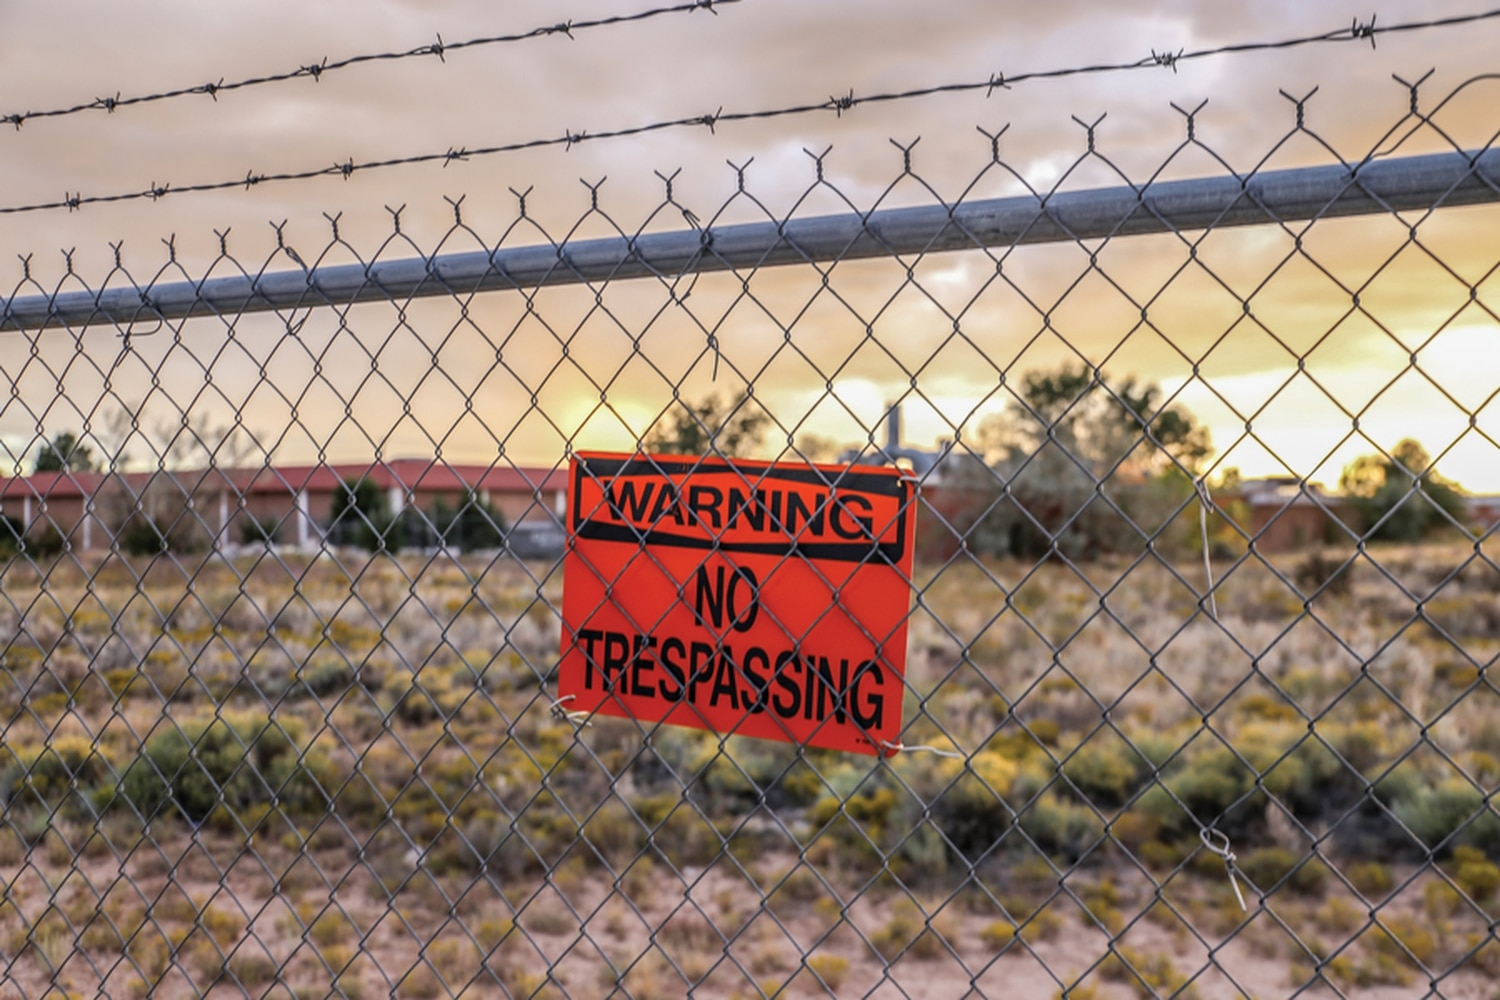 The state environment department says the timeline for formal cleanup of the facility that formerly manufactured nuclear detection equipment isn't certain.